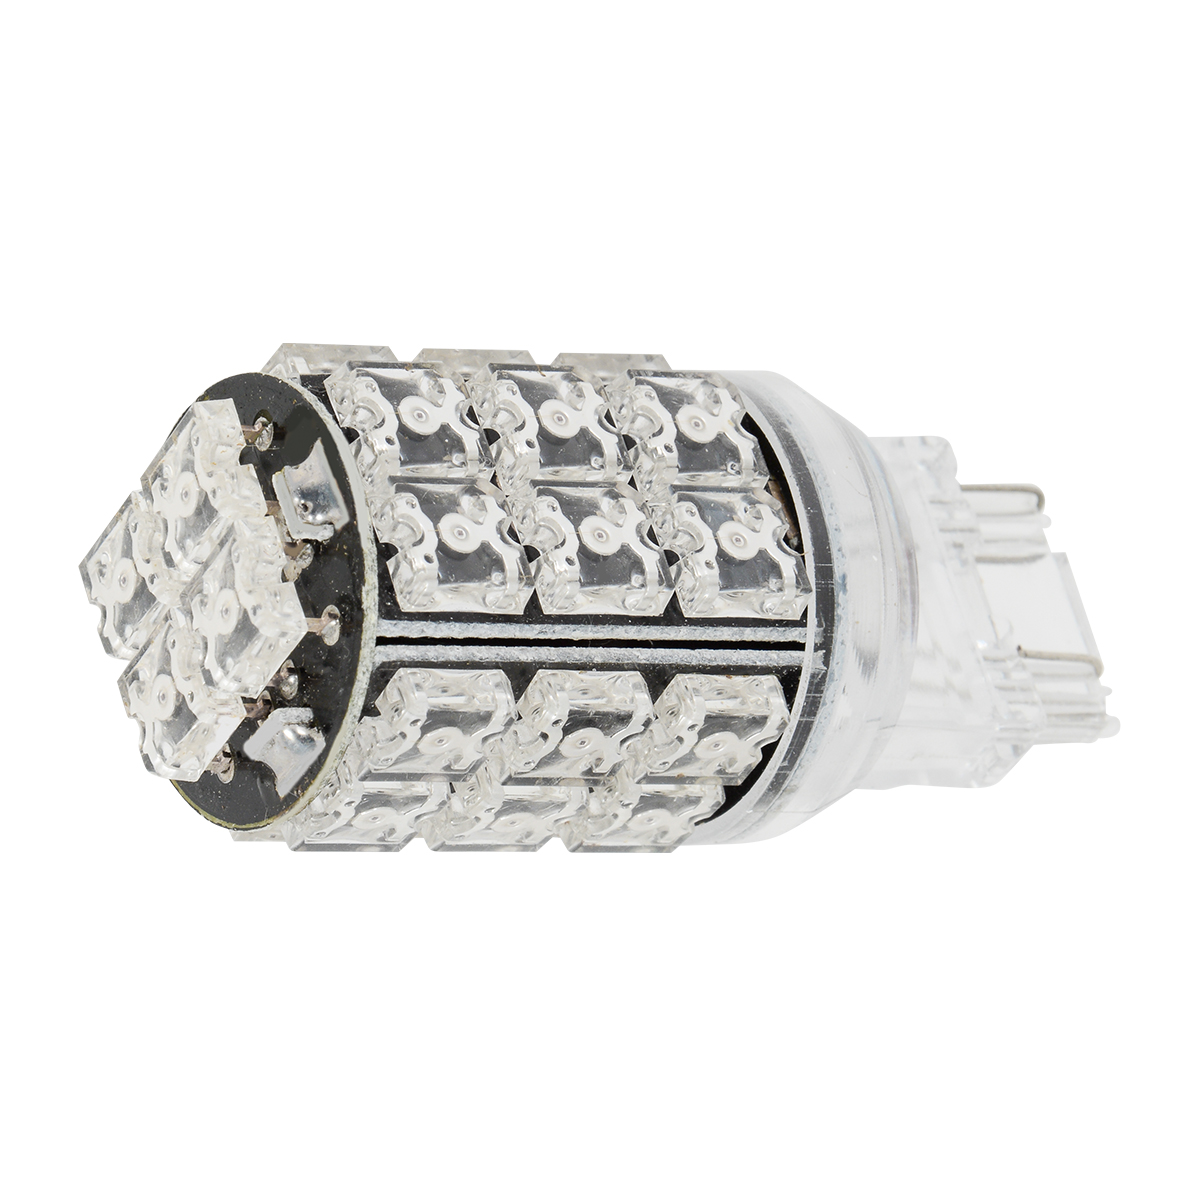 3156 Tower Style 28 LED Light Bulb